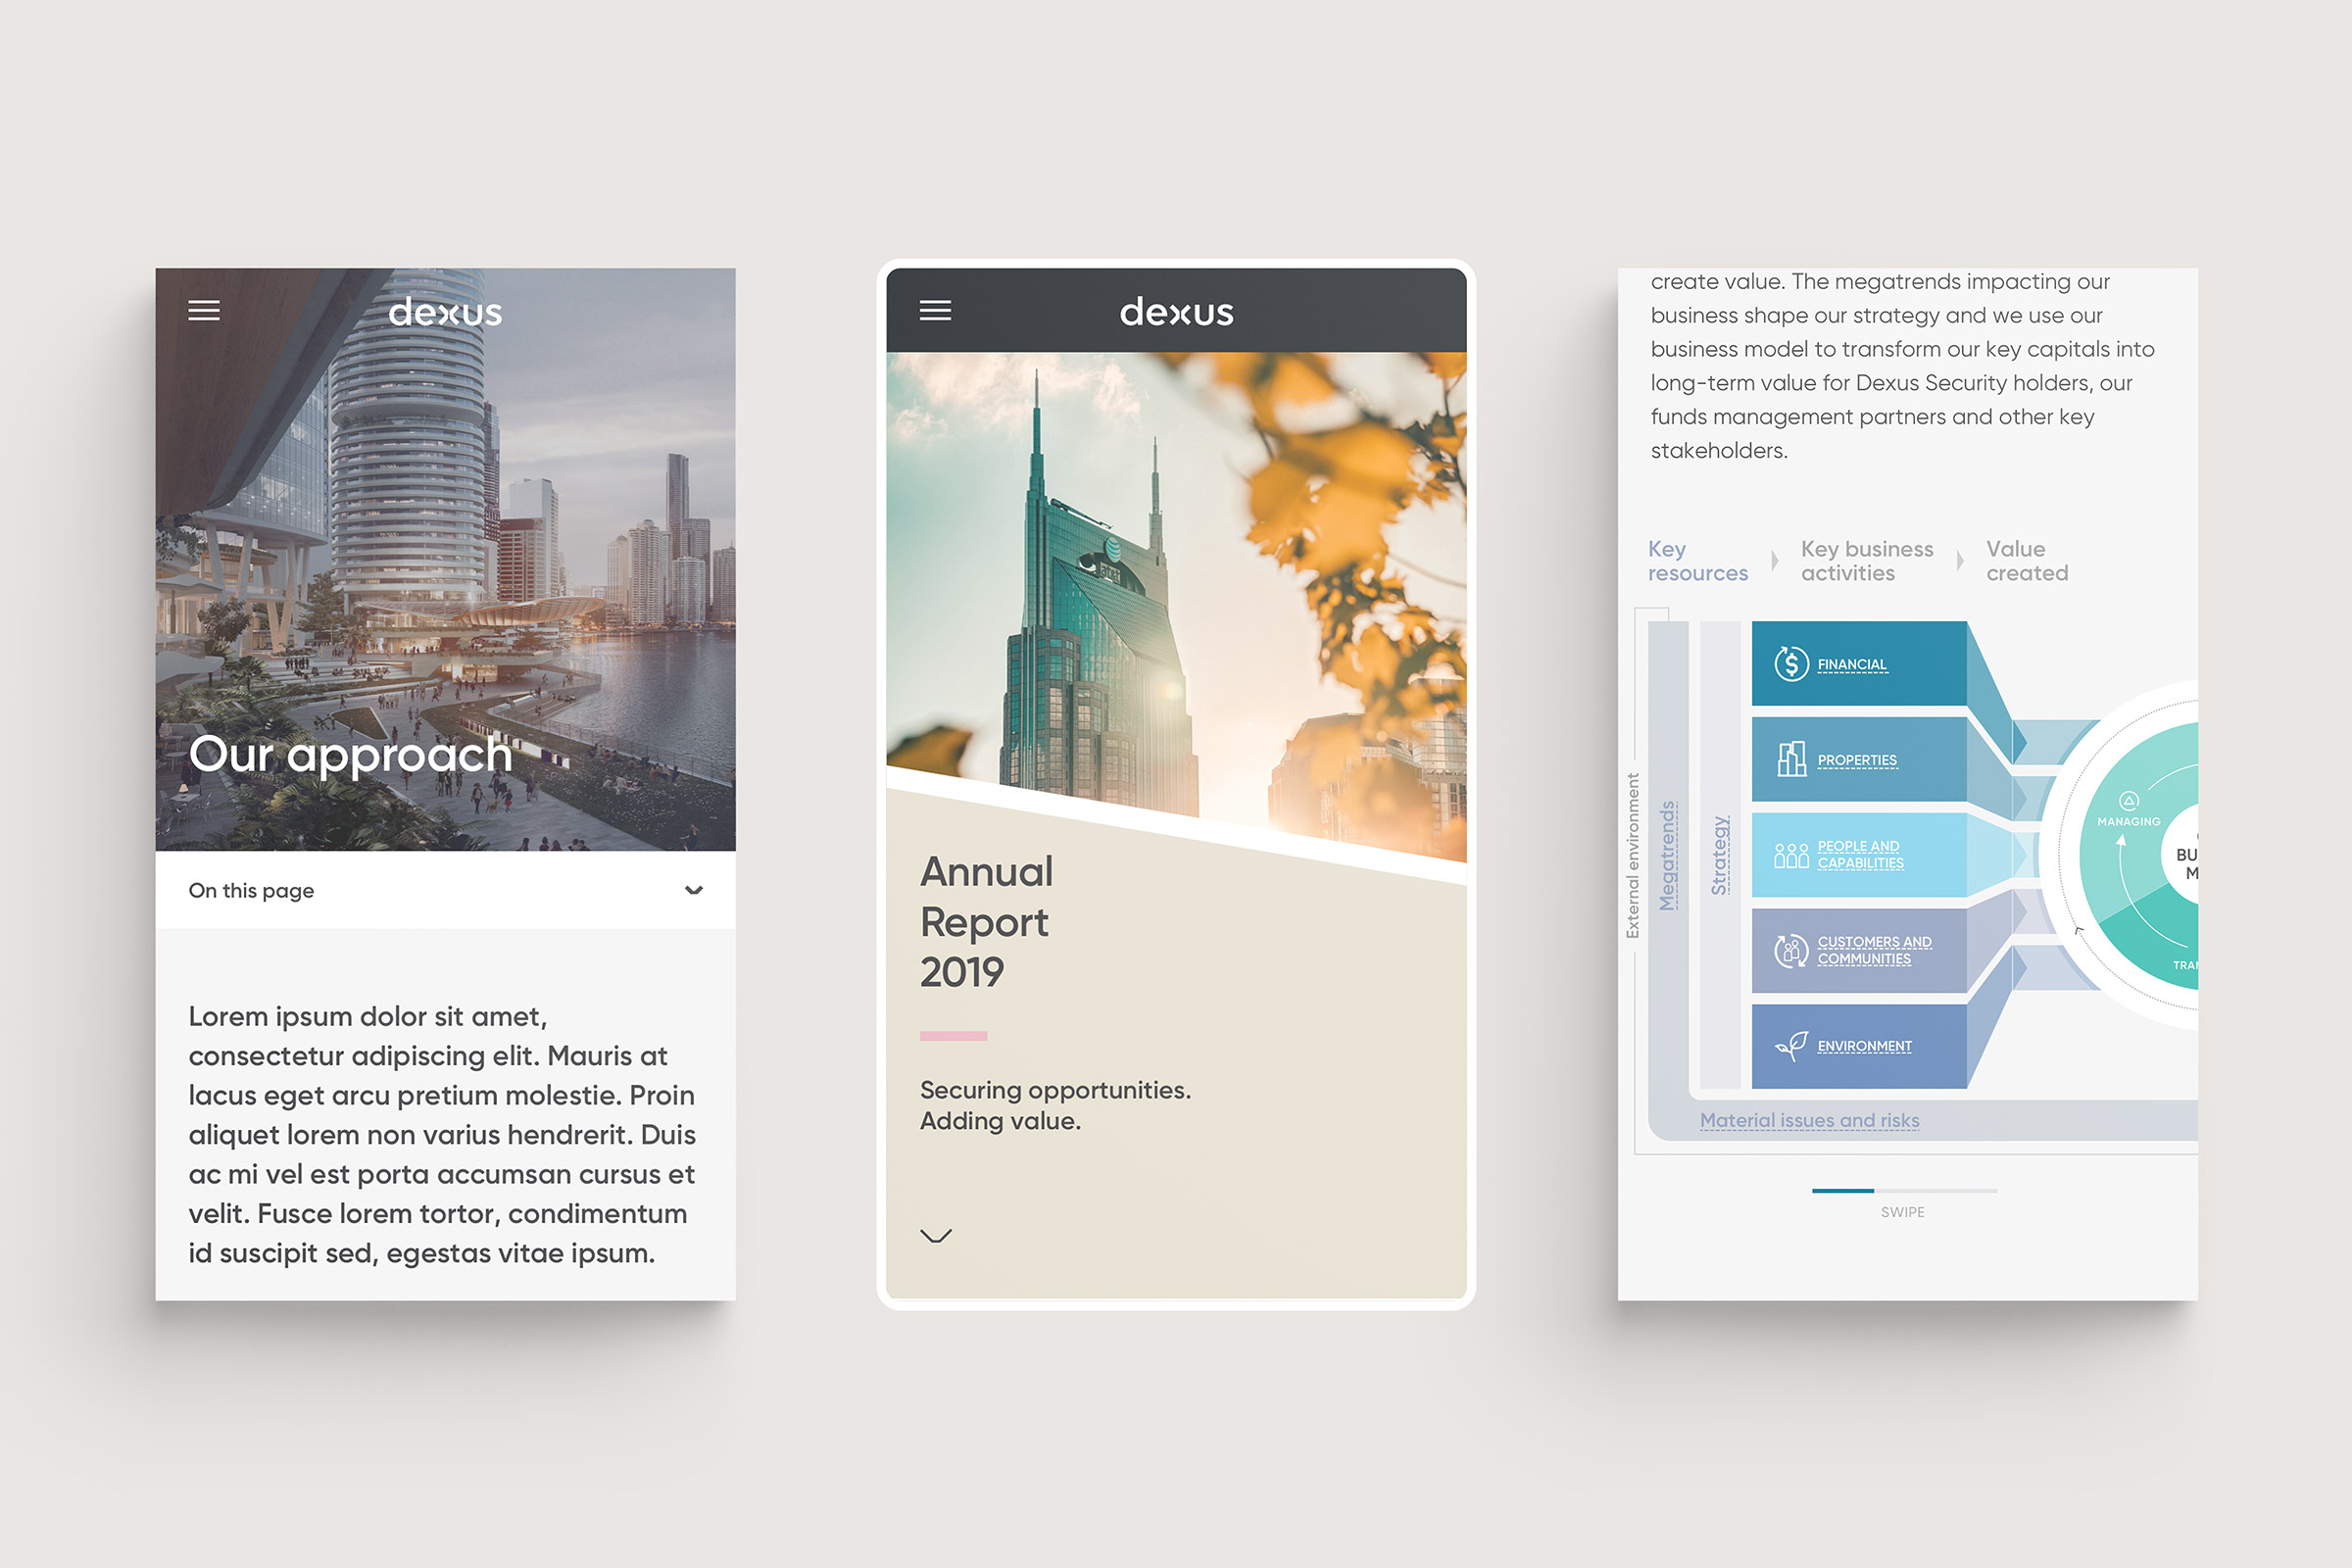 Dexus 2019 Annual Report. Mobile responsive website design with 'Homepage' , 'Our approach' and infographic details.